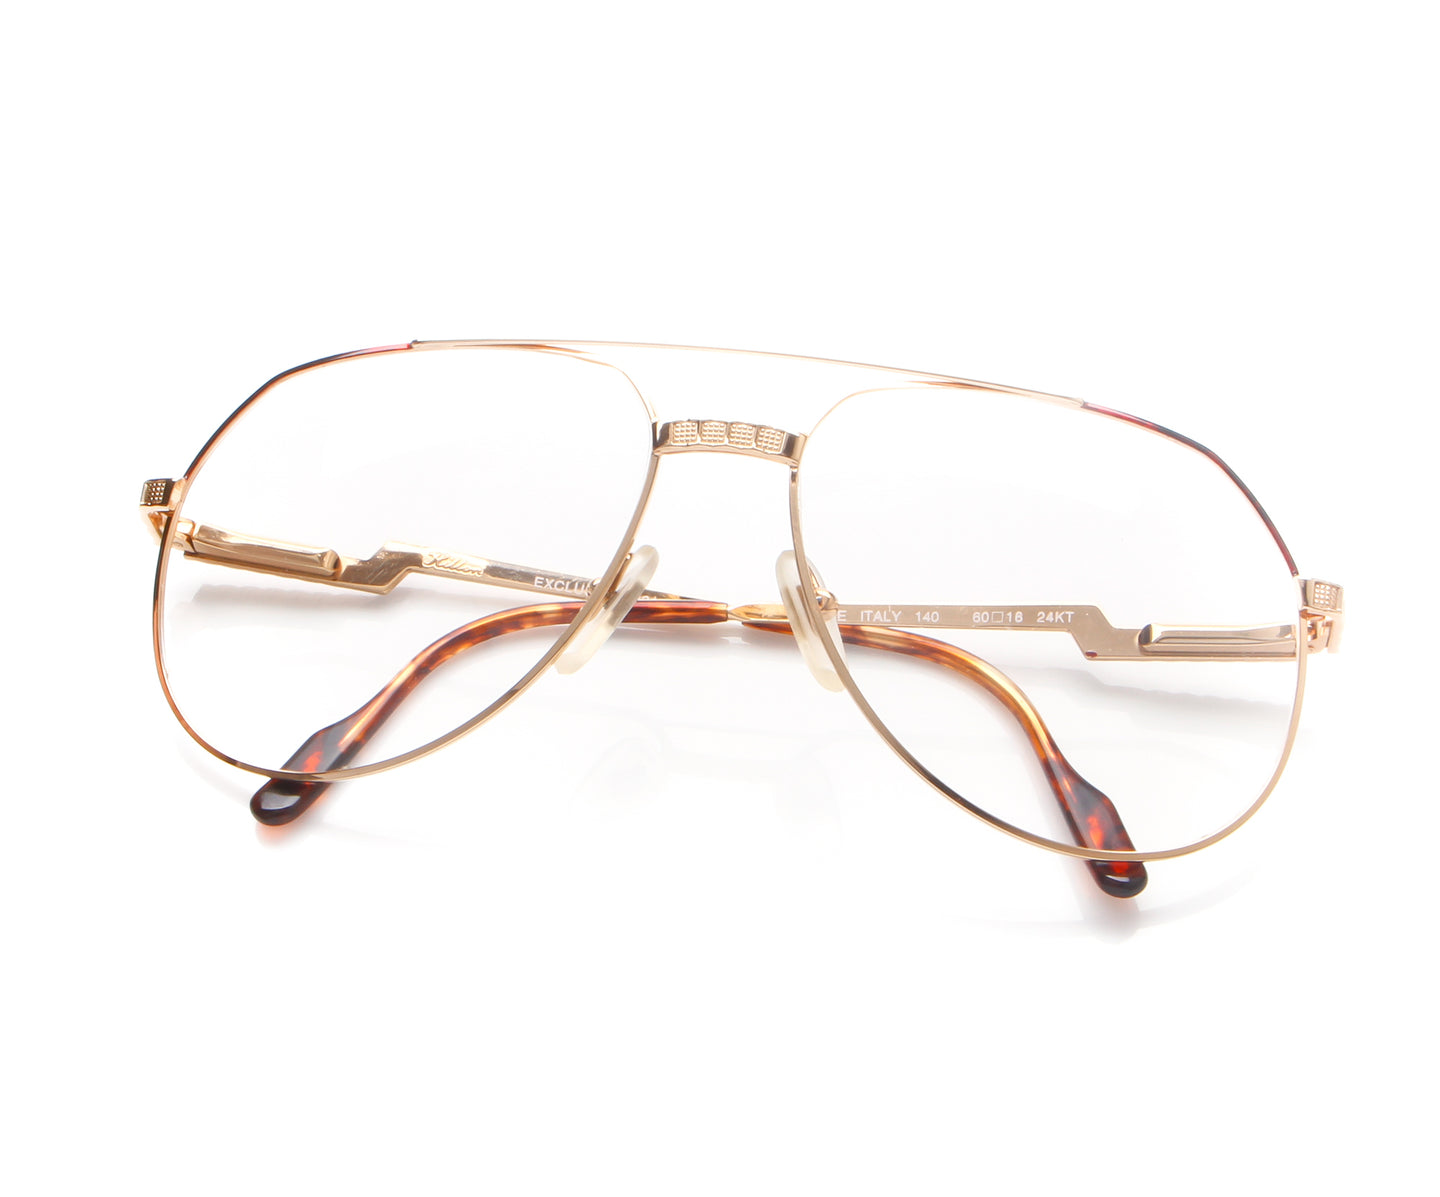 Vintage Hilton Exclusive 021 3 24KT, Hilton , glasses frames, eyeglasses online, eyeglass frames, mens glasses, womens glasses, buy glasses online, designer eyeglasses, vintage sunglasses, retro sunglasses, vintage glasses, sunglass, eyeglass, glasses, lens, vintage frames company, vf